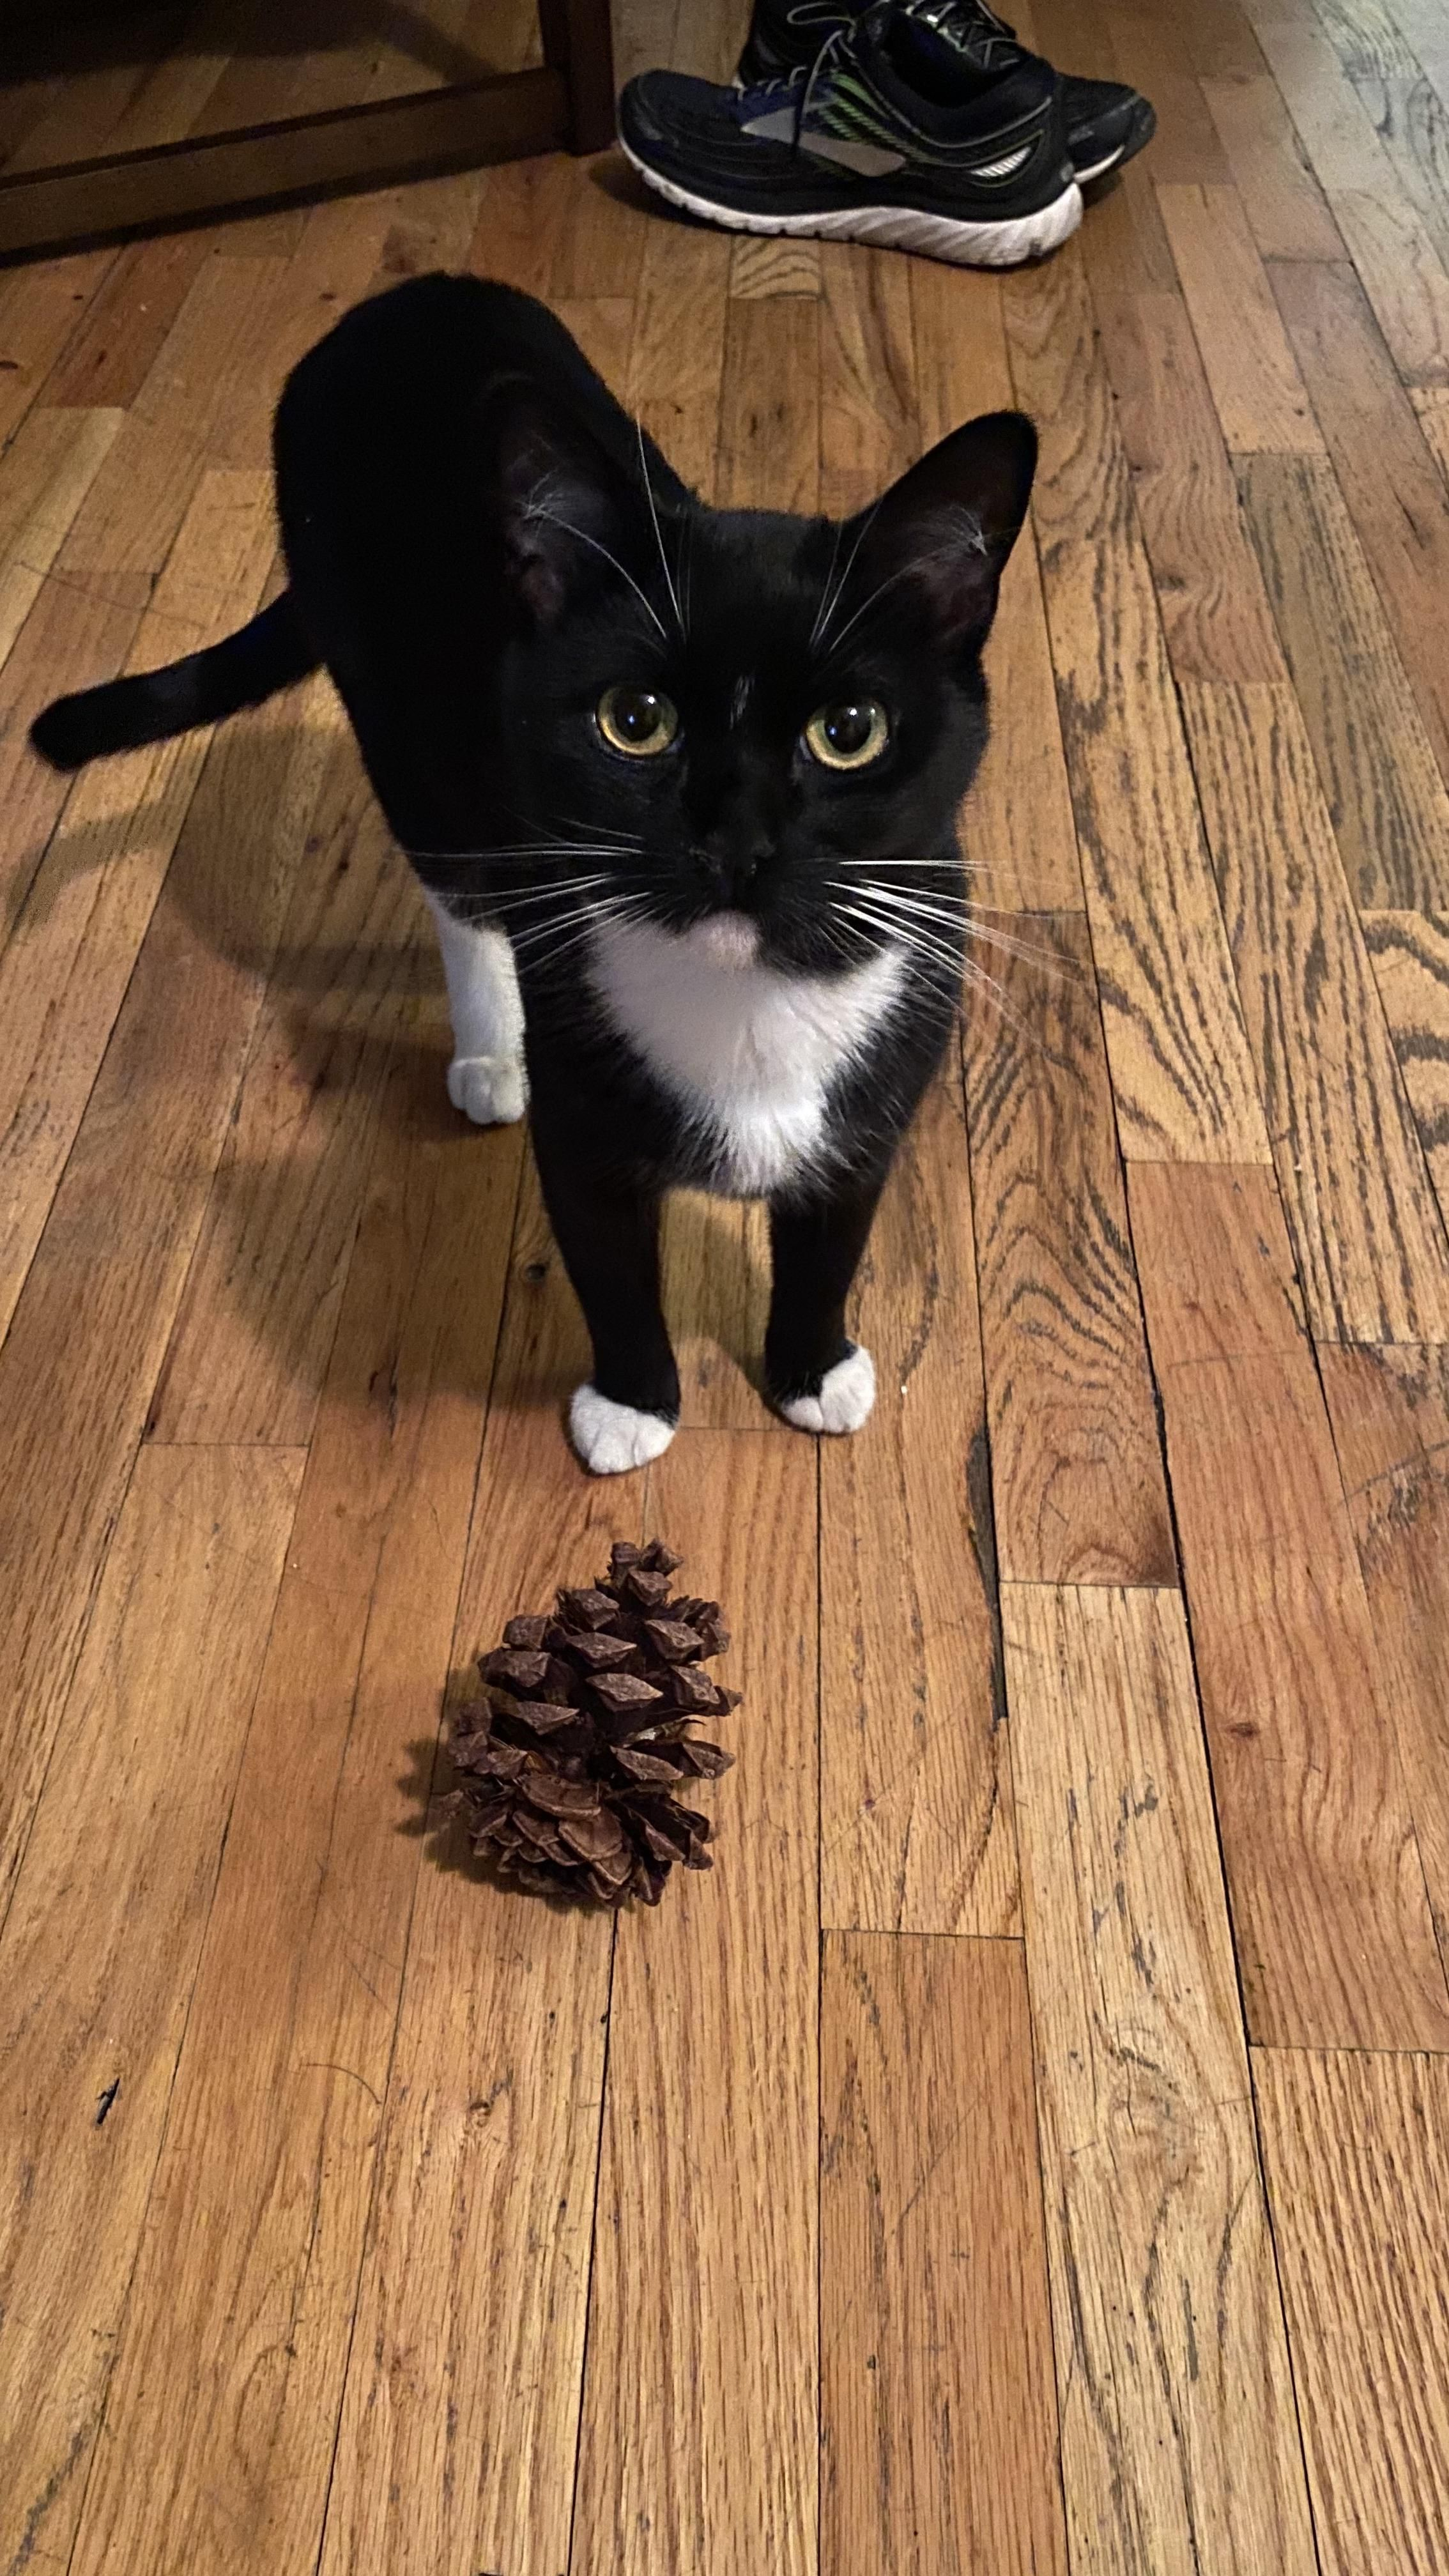 Shes Proud Of Her Pine Cone Teelast Com In 2020 Kittens Cutest Cat Mom Sweet Animals